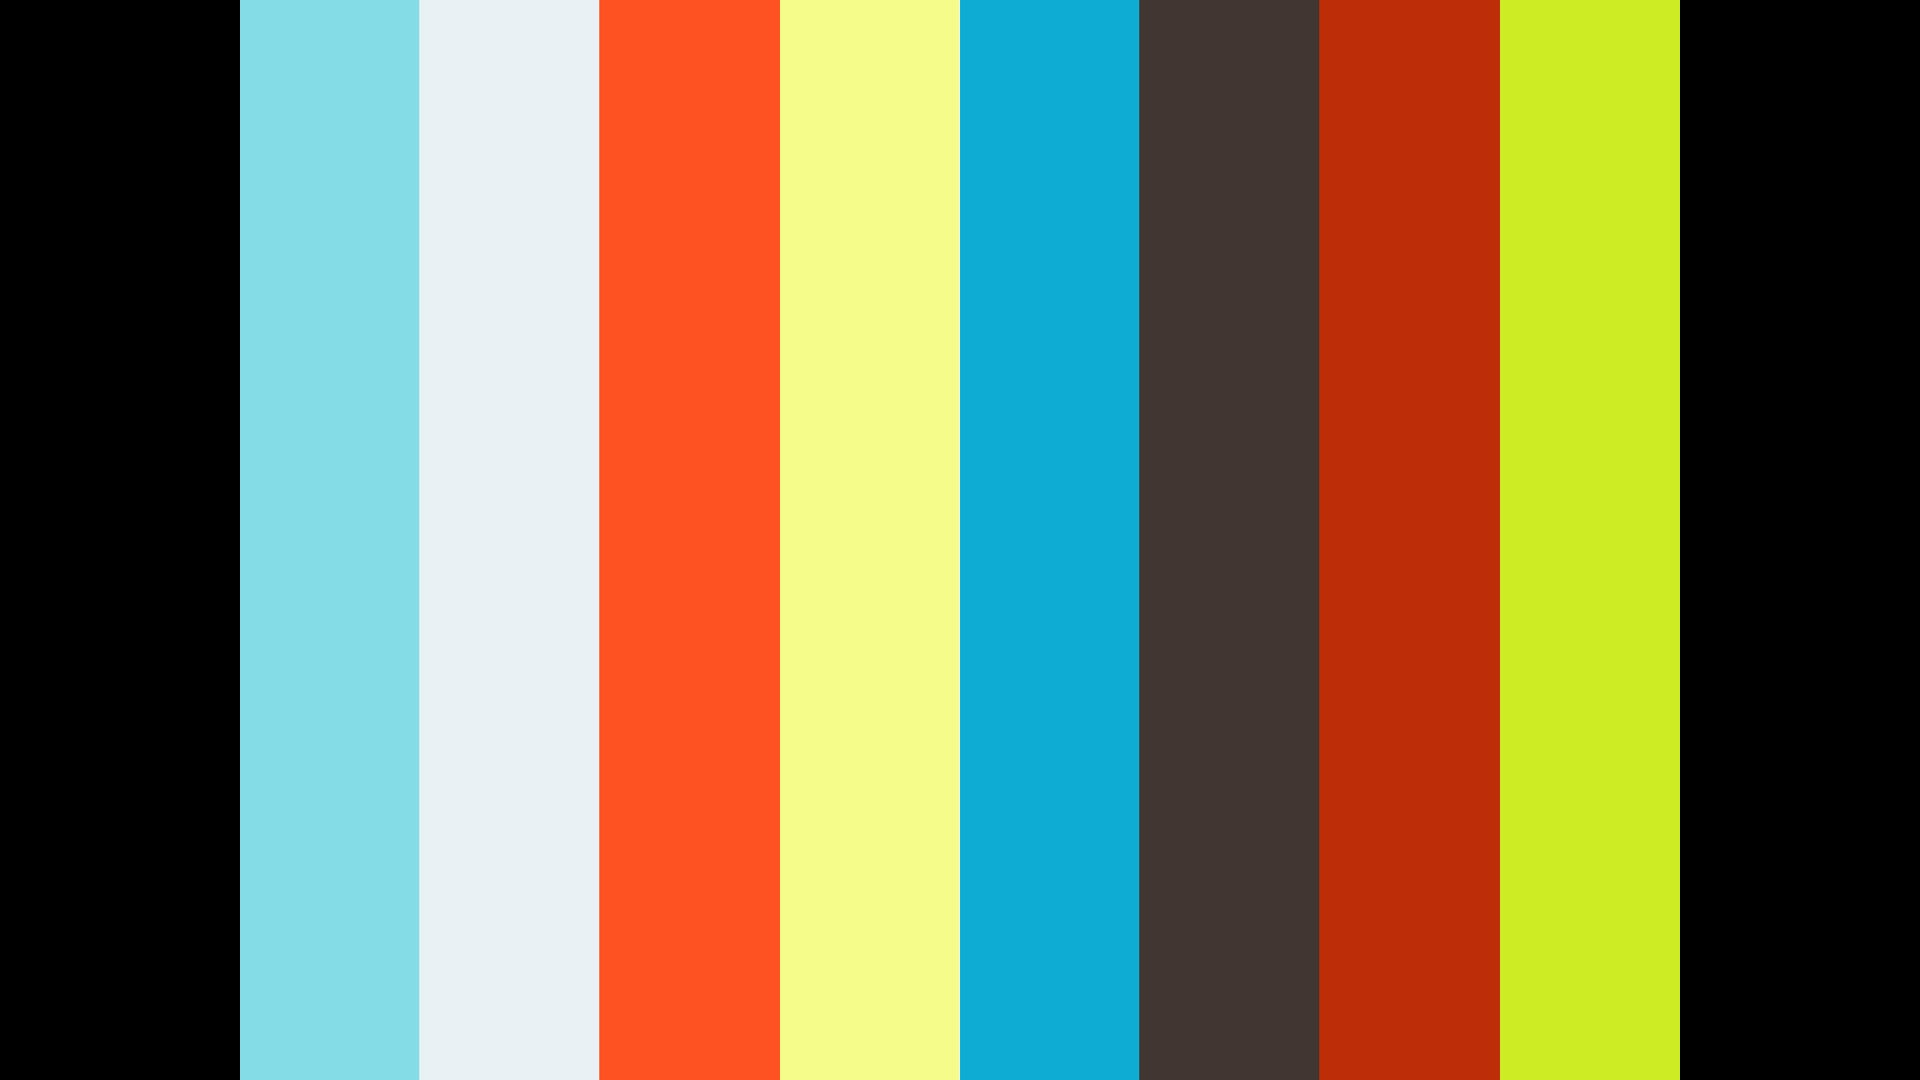 Facing Fear About Moving Forward